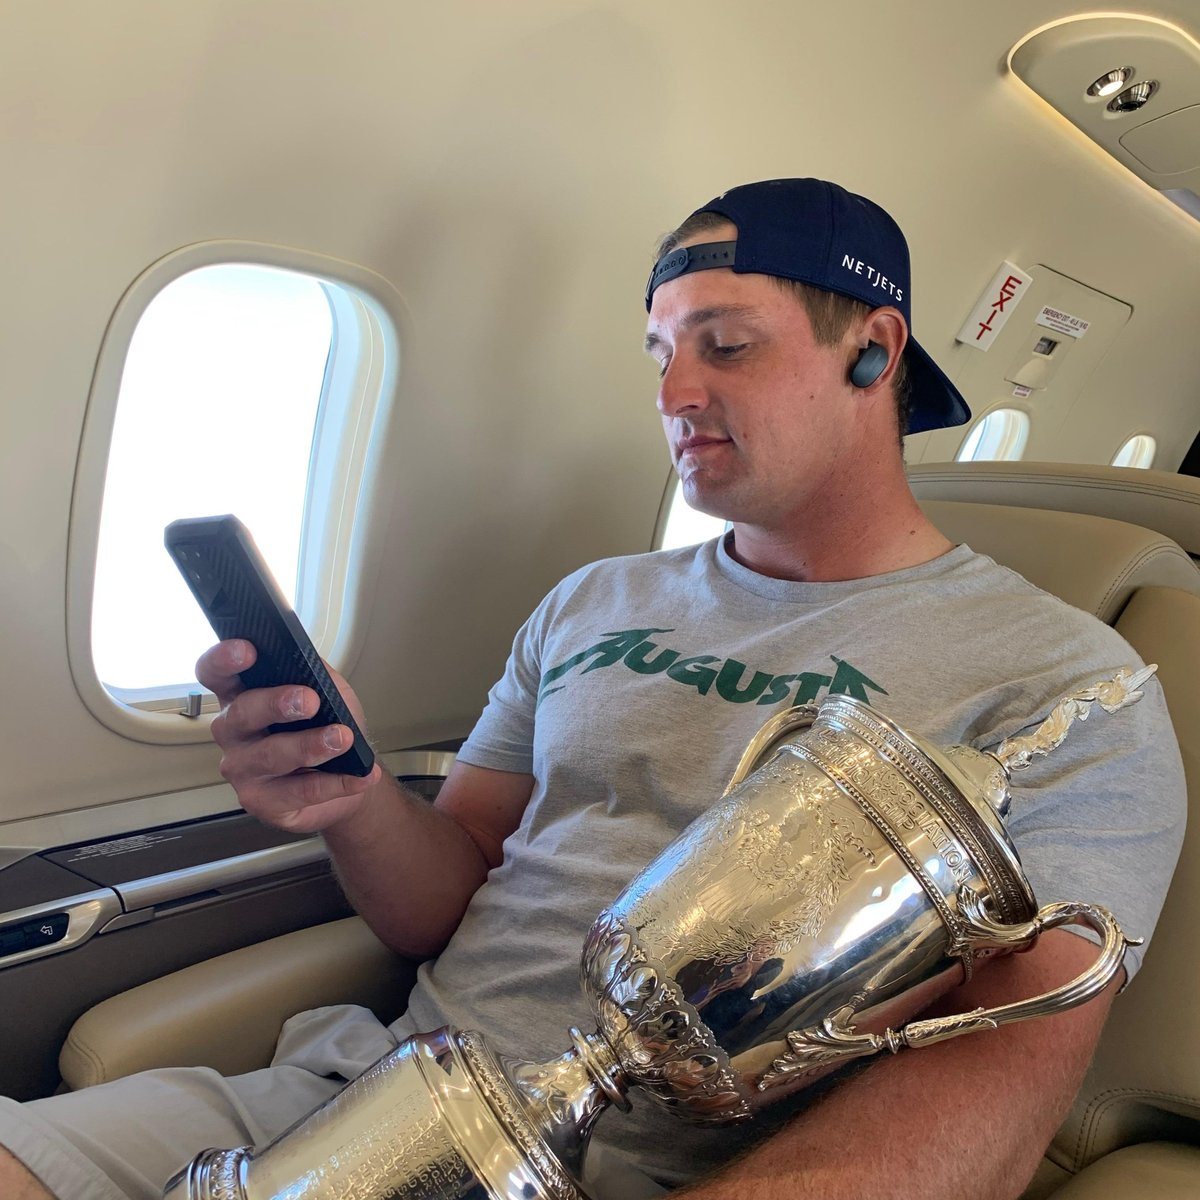 .@b_dechambeau knows there is nothing better than the feeling of a hard-fought victory. The Bose QuietComfort® Earbuds help him celebrate and #FeelItAll while looking ahead to the next challenge. https://t.co/yPH2uFuVg1 #BoseEarbuds https://t.co/w3v9HRONCX